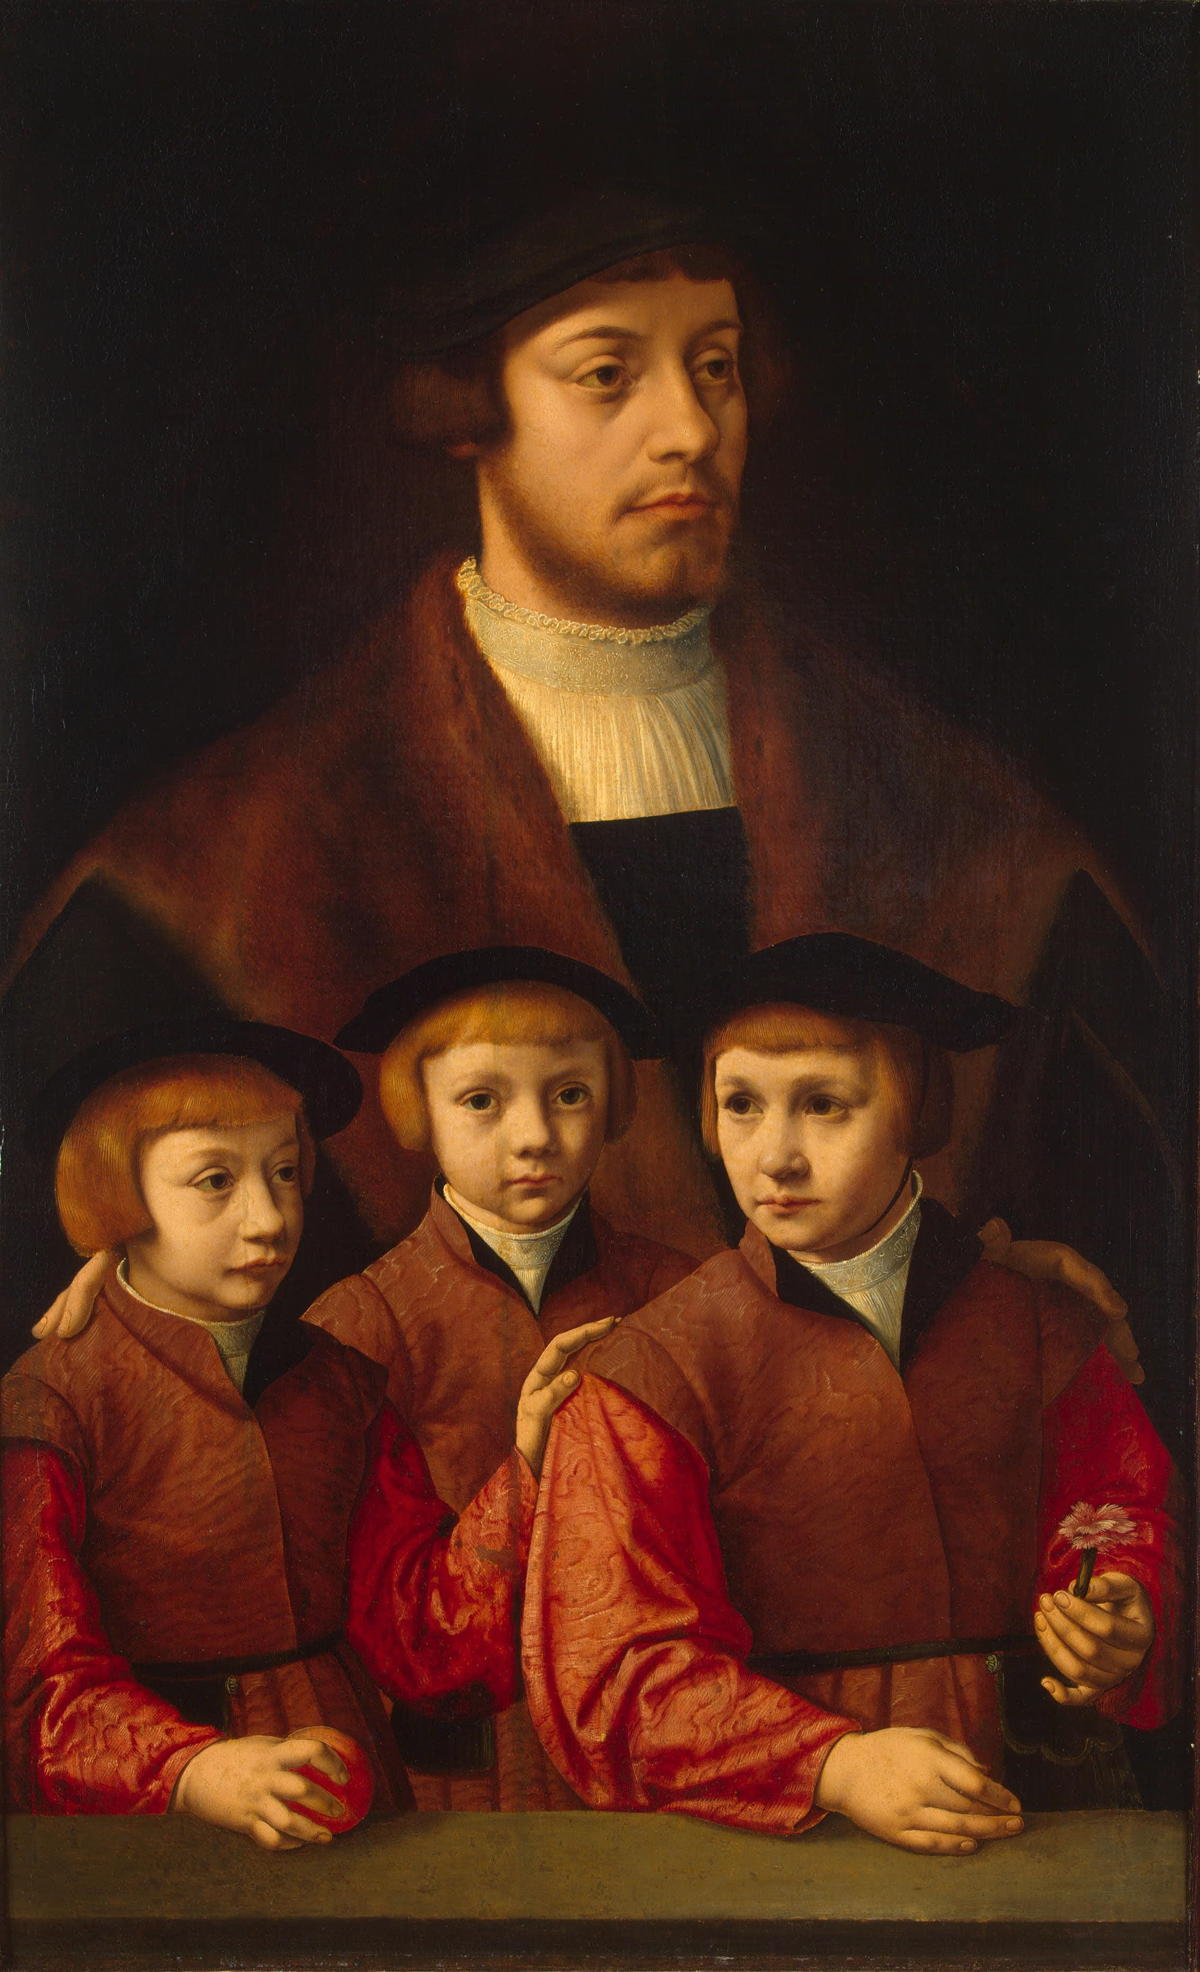 Portrait of a Man with Three Sons by Barthel Bruyn